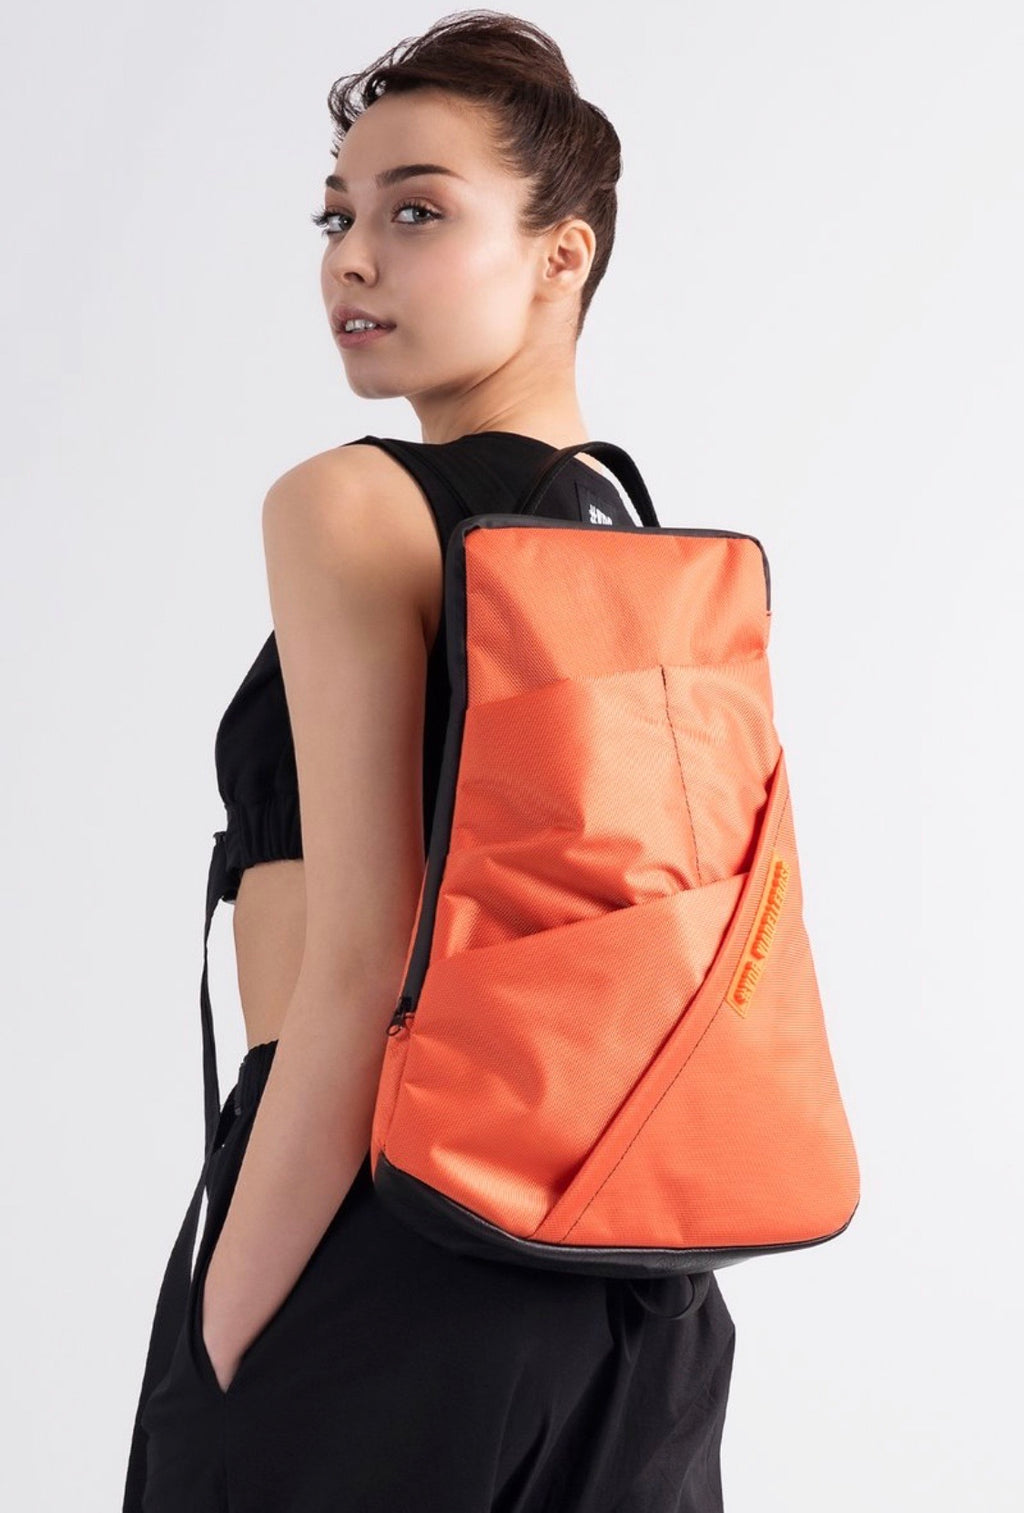 The geometrical backpack